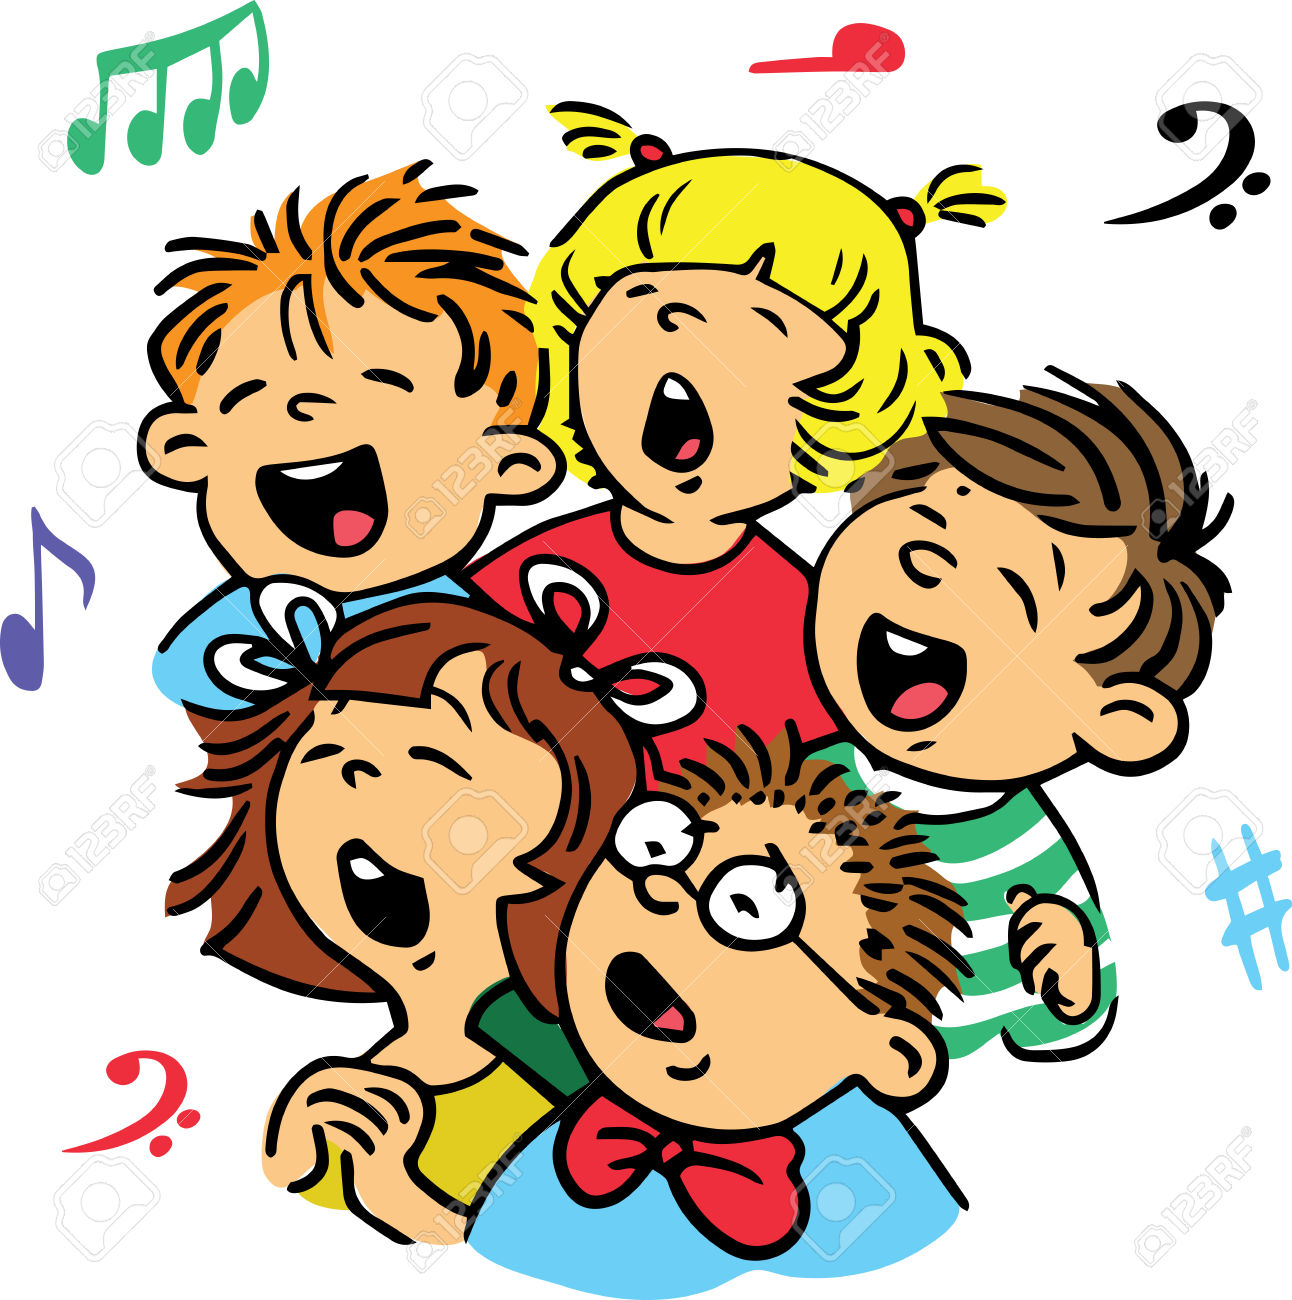 hight resolution of 1292x1300 children signing choir clipart explore pictures